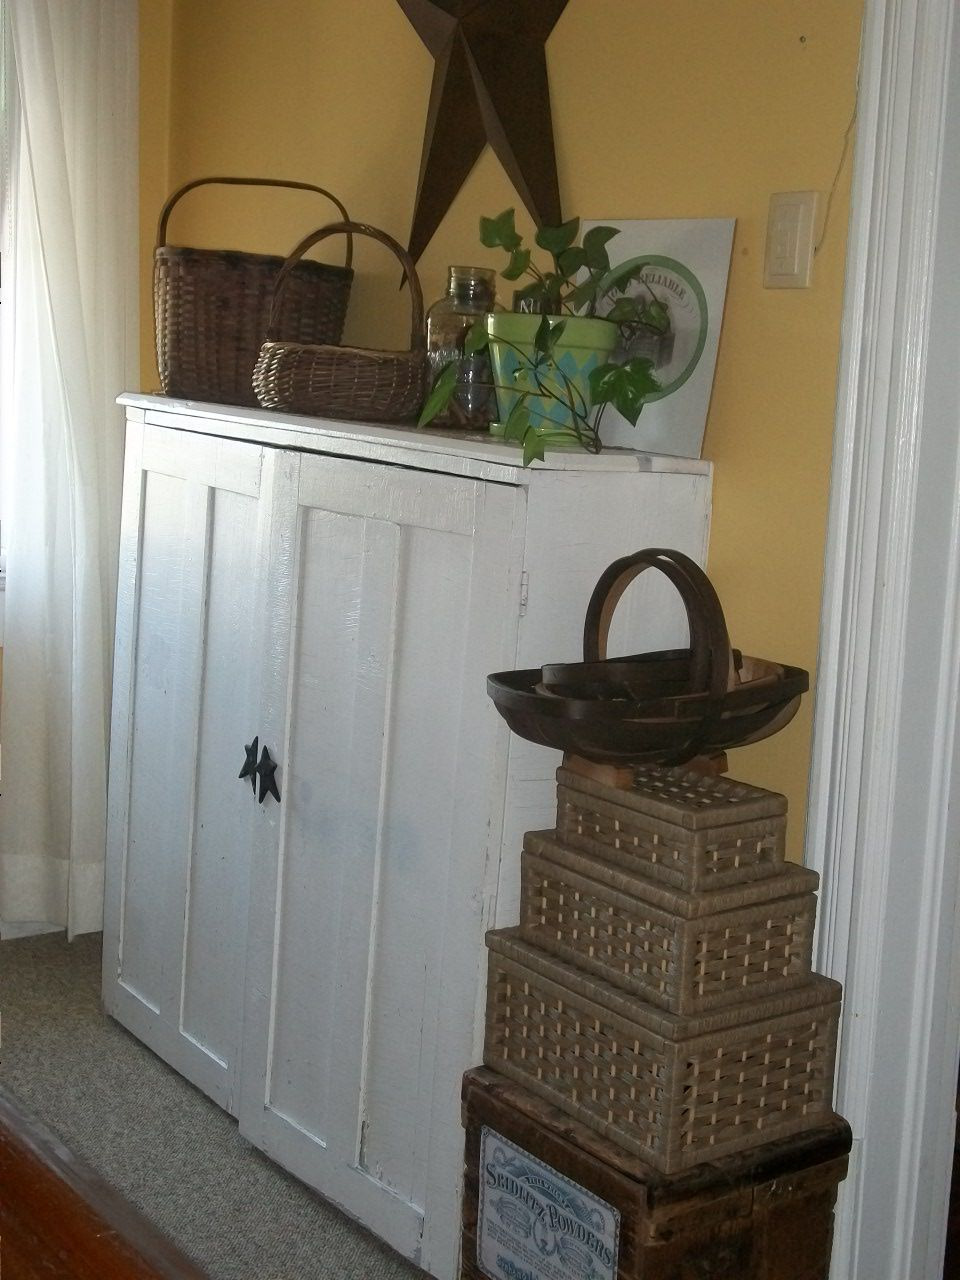 Best idea yet for reusing old kitchen use this